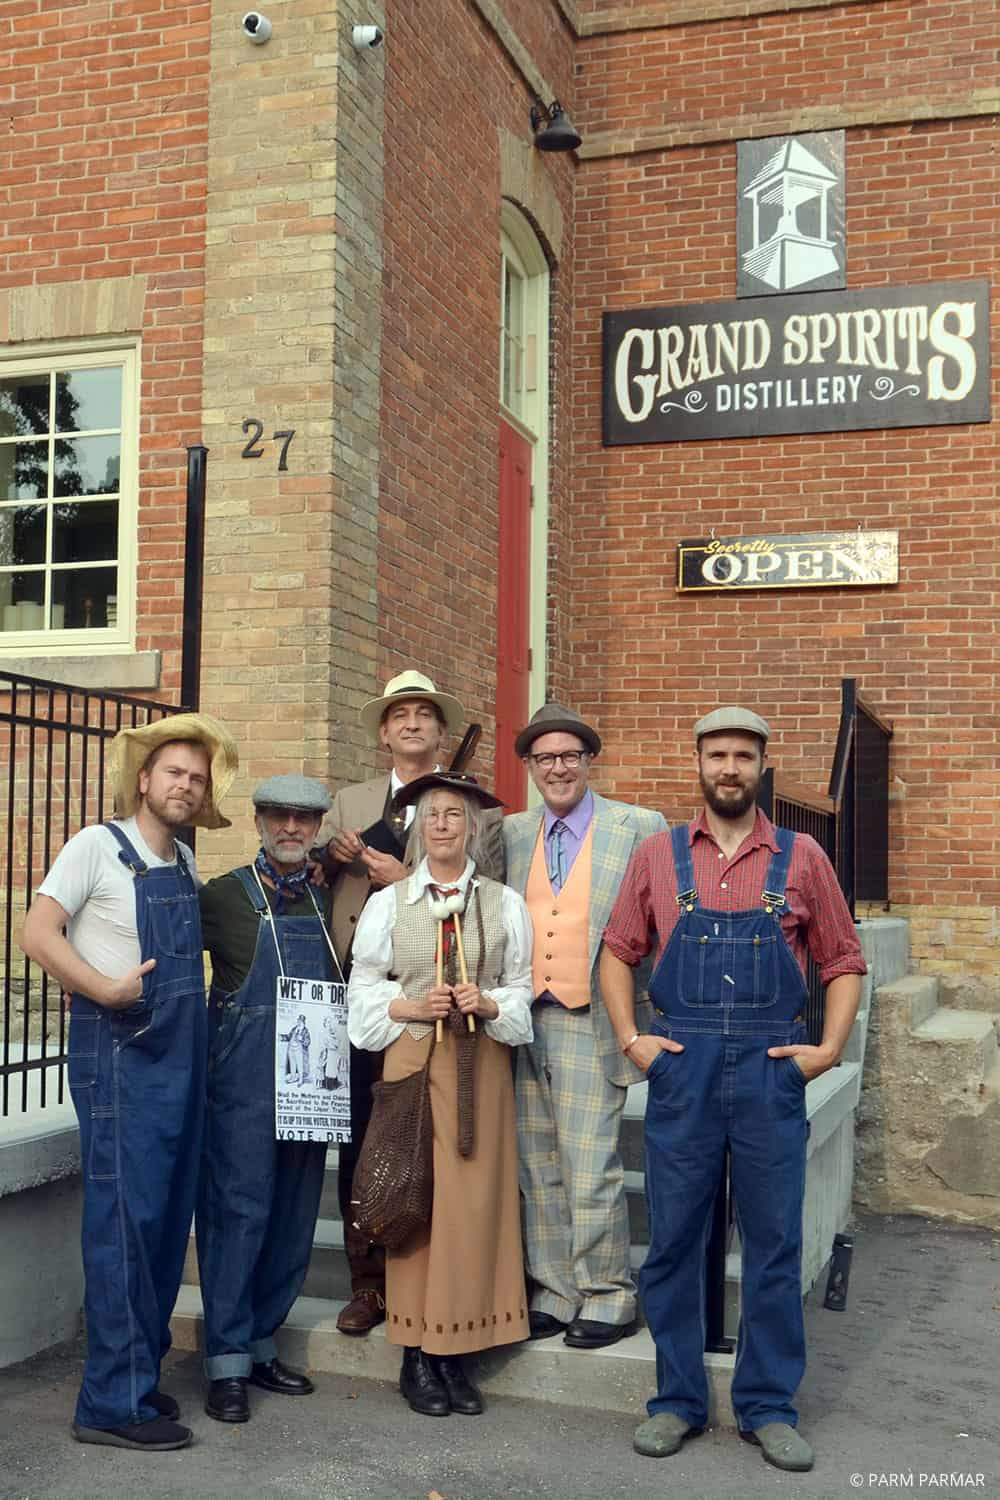 Temperance and Temptation Tour: The Headwaters Story of Prohibition in Ontario - The Cast | #travel #tour #Ontario #Toronto #guided #self-drive #alcohol #distillery #wine #history